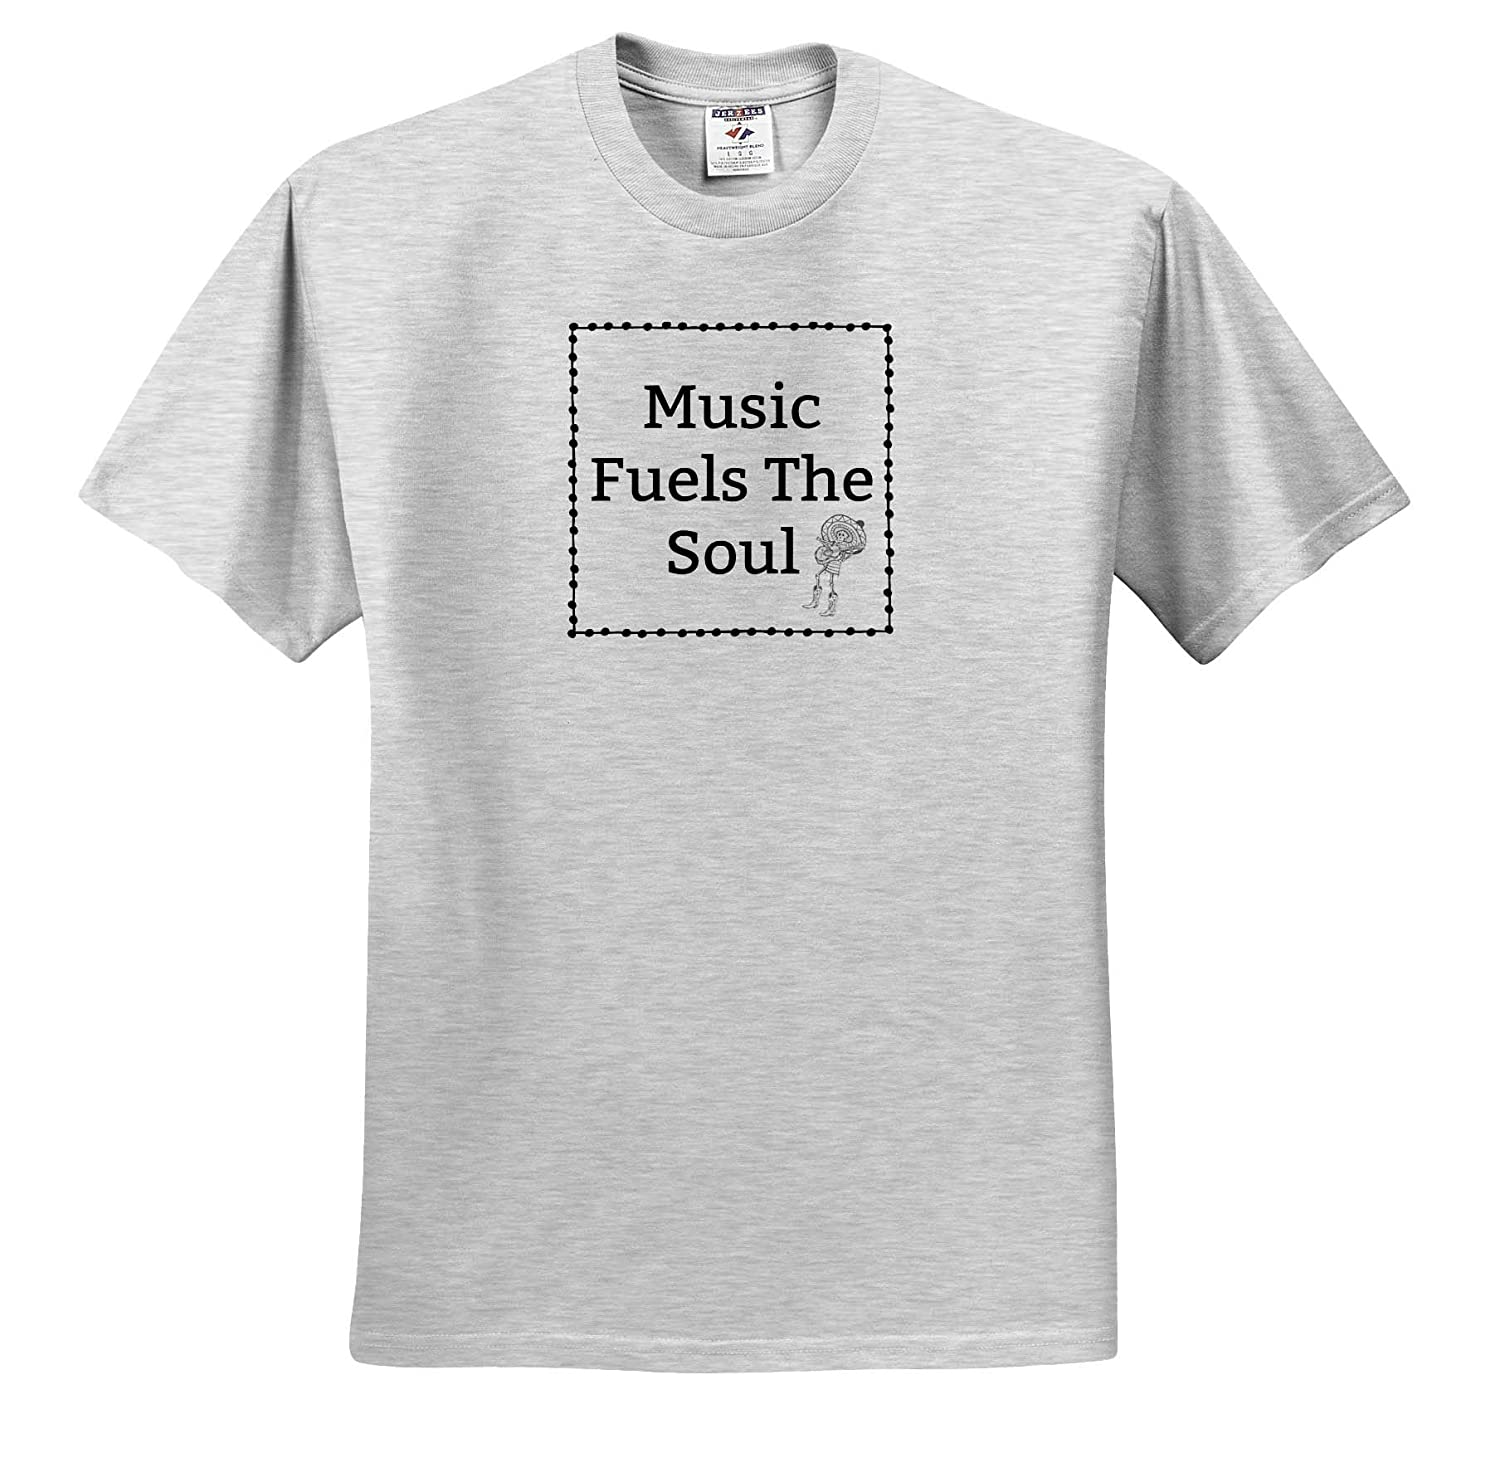 Image of Music Fuels The Soul ts/_316687 Adult T-Shirt XL 3dRose Carrie Merchant Image